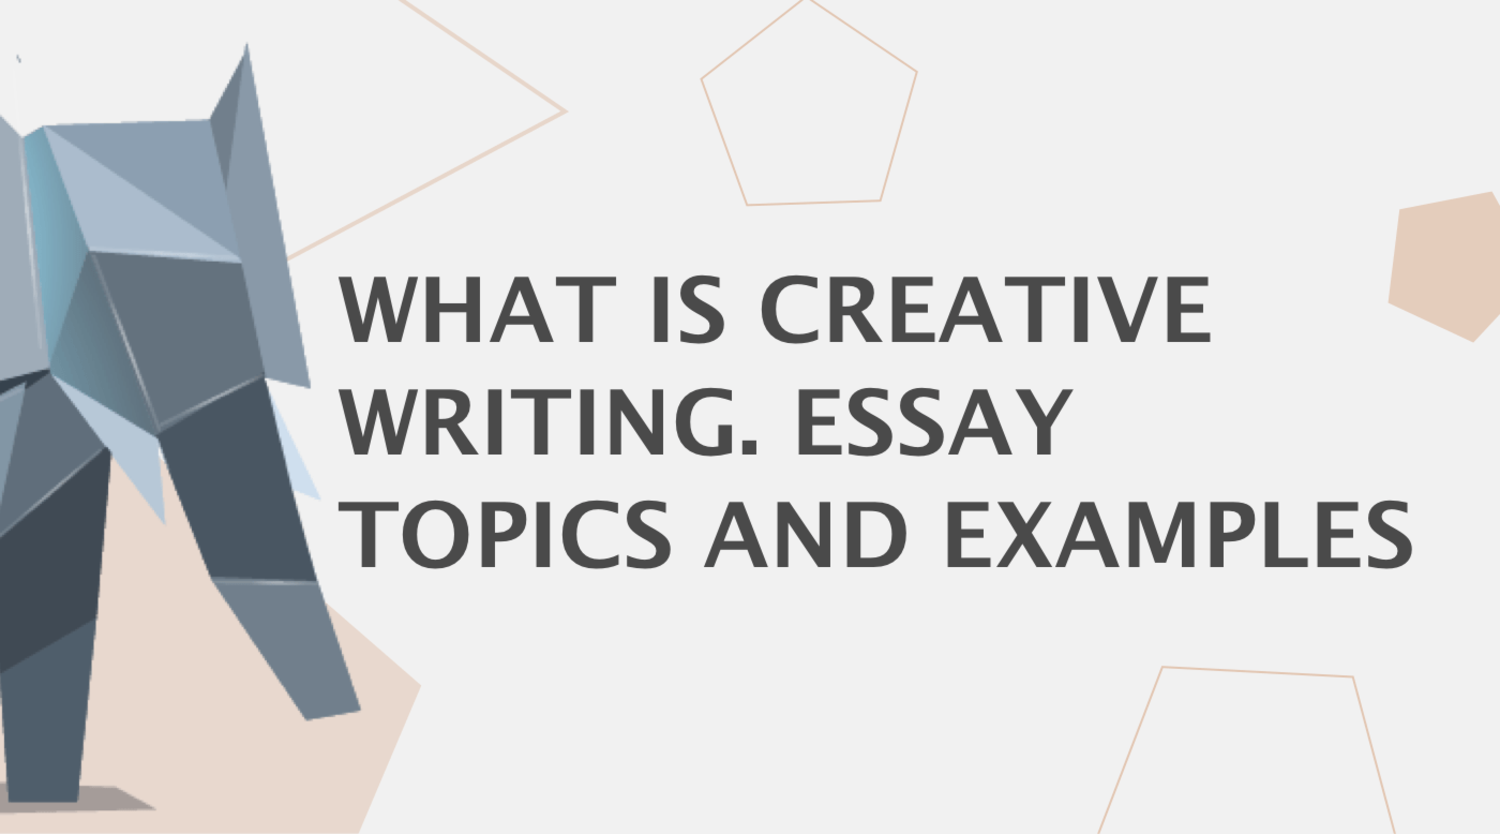 What is Creative Writing. Essay Topics and Examples